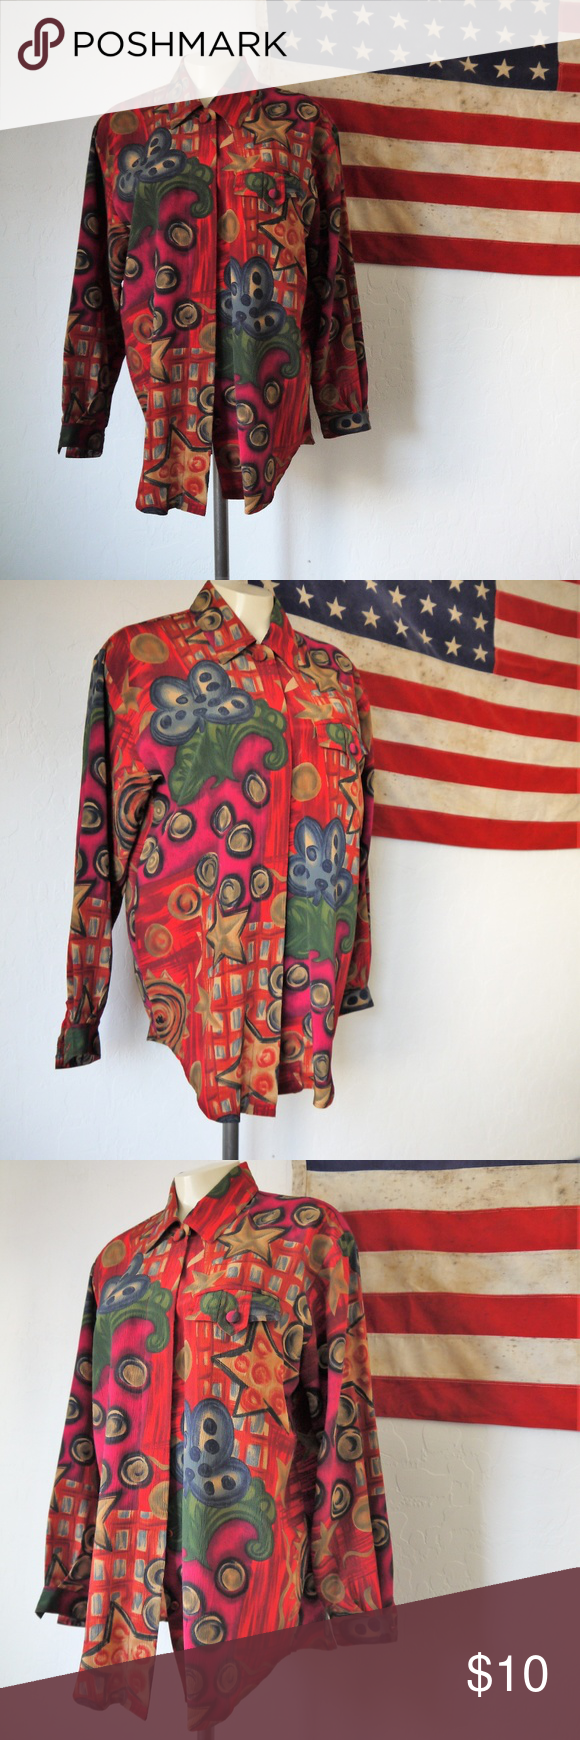 27757cb6 vintage avant garde button up 80s top made by Christie & Jill ready to wear  size small 100% polyester made in Hong Kong vintage Tops